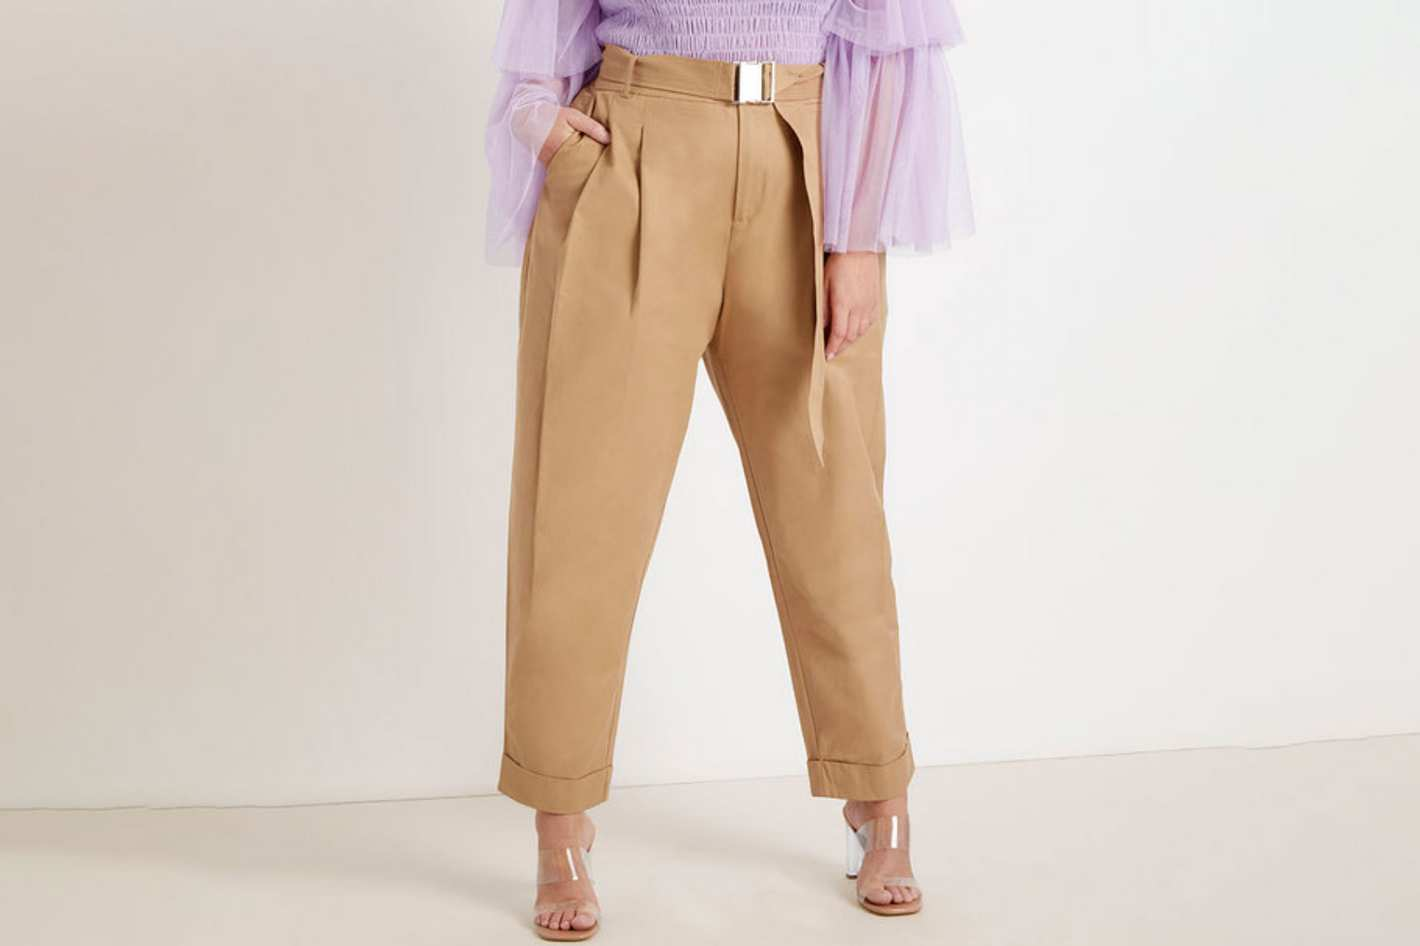 Priscilla Ono x ELOQUII Belted Banana Pant